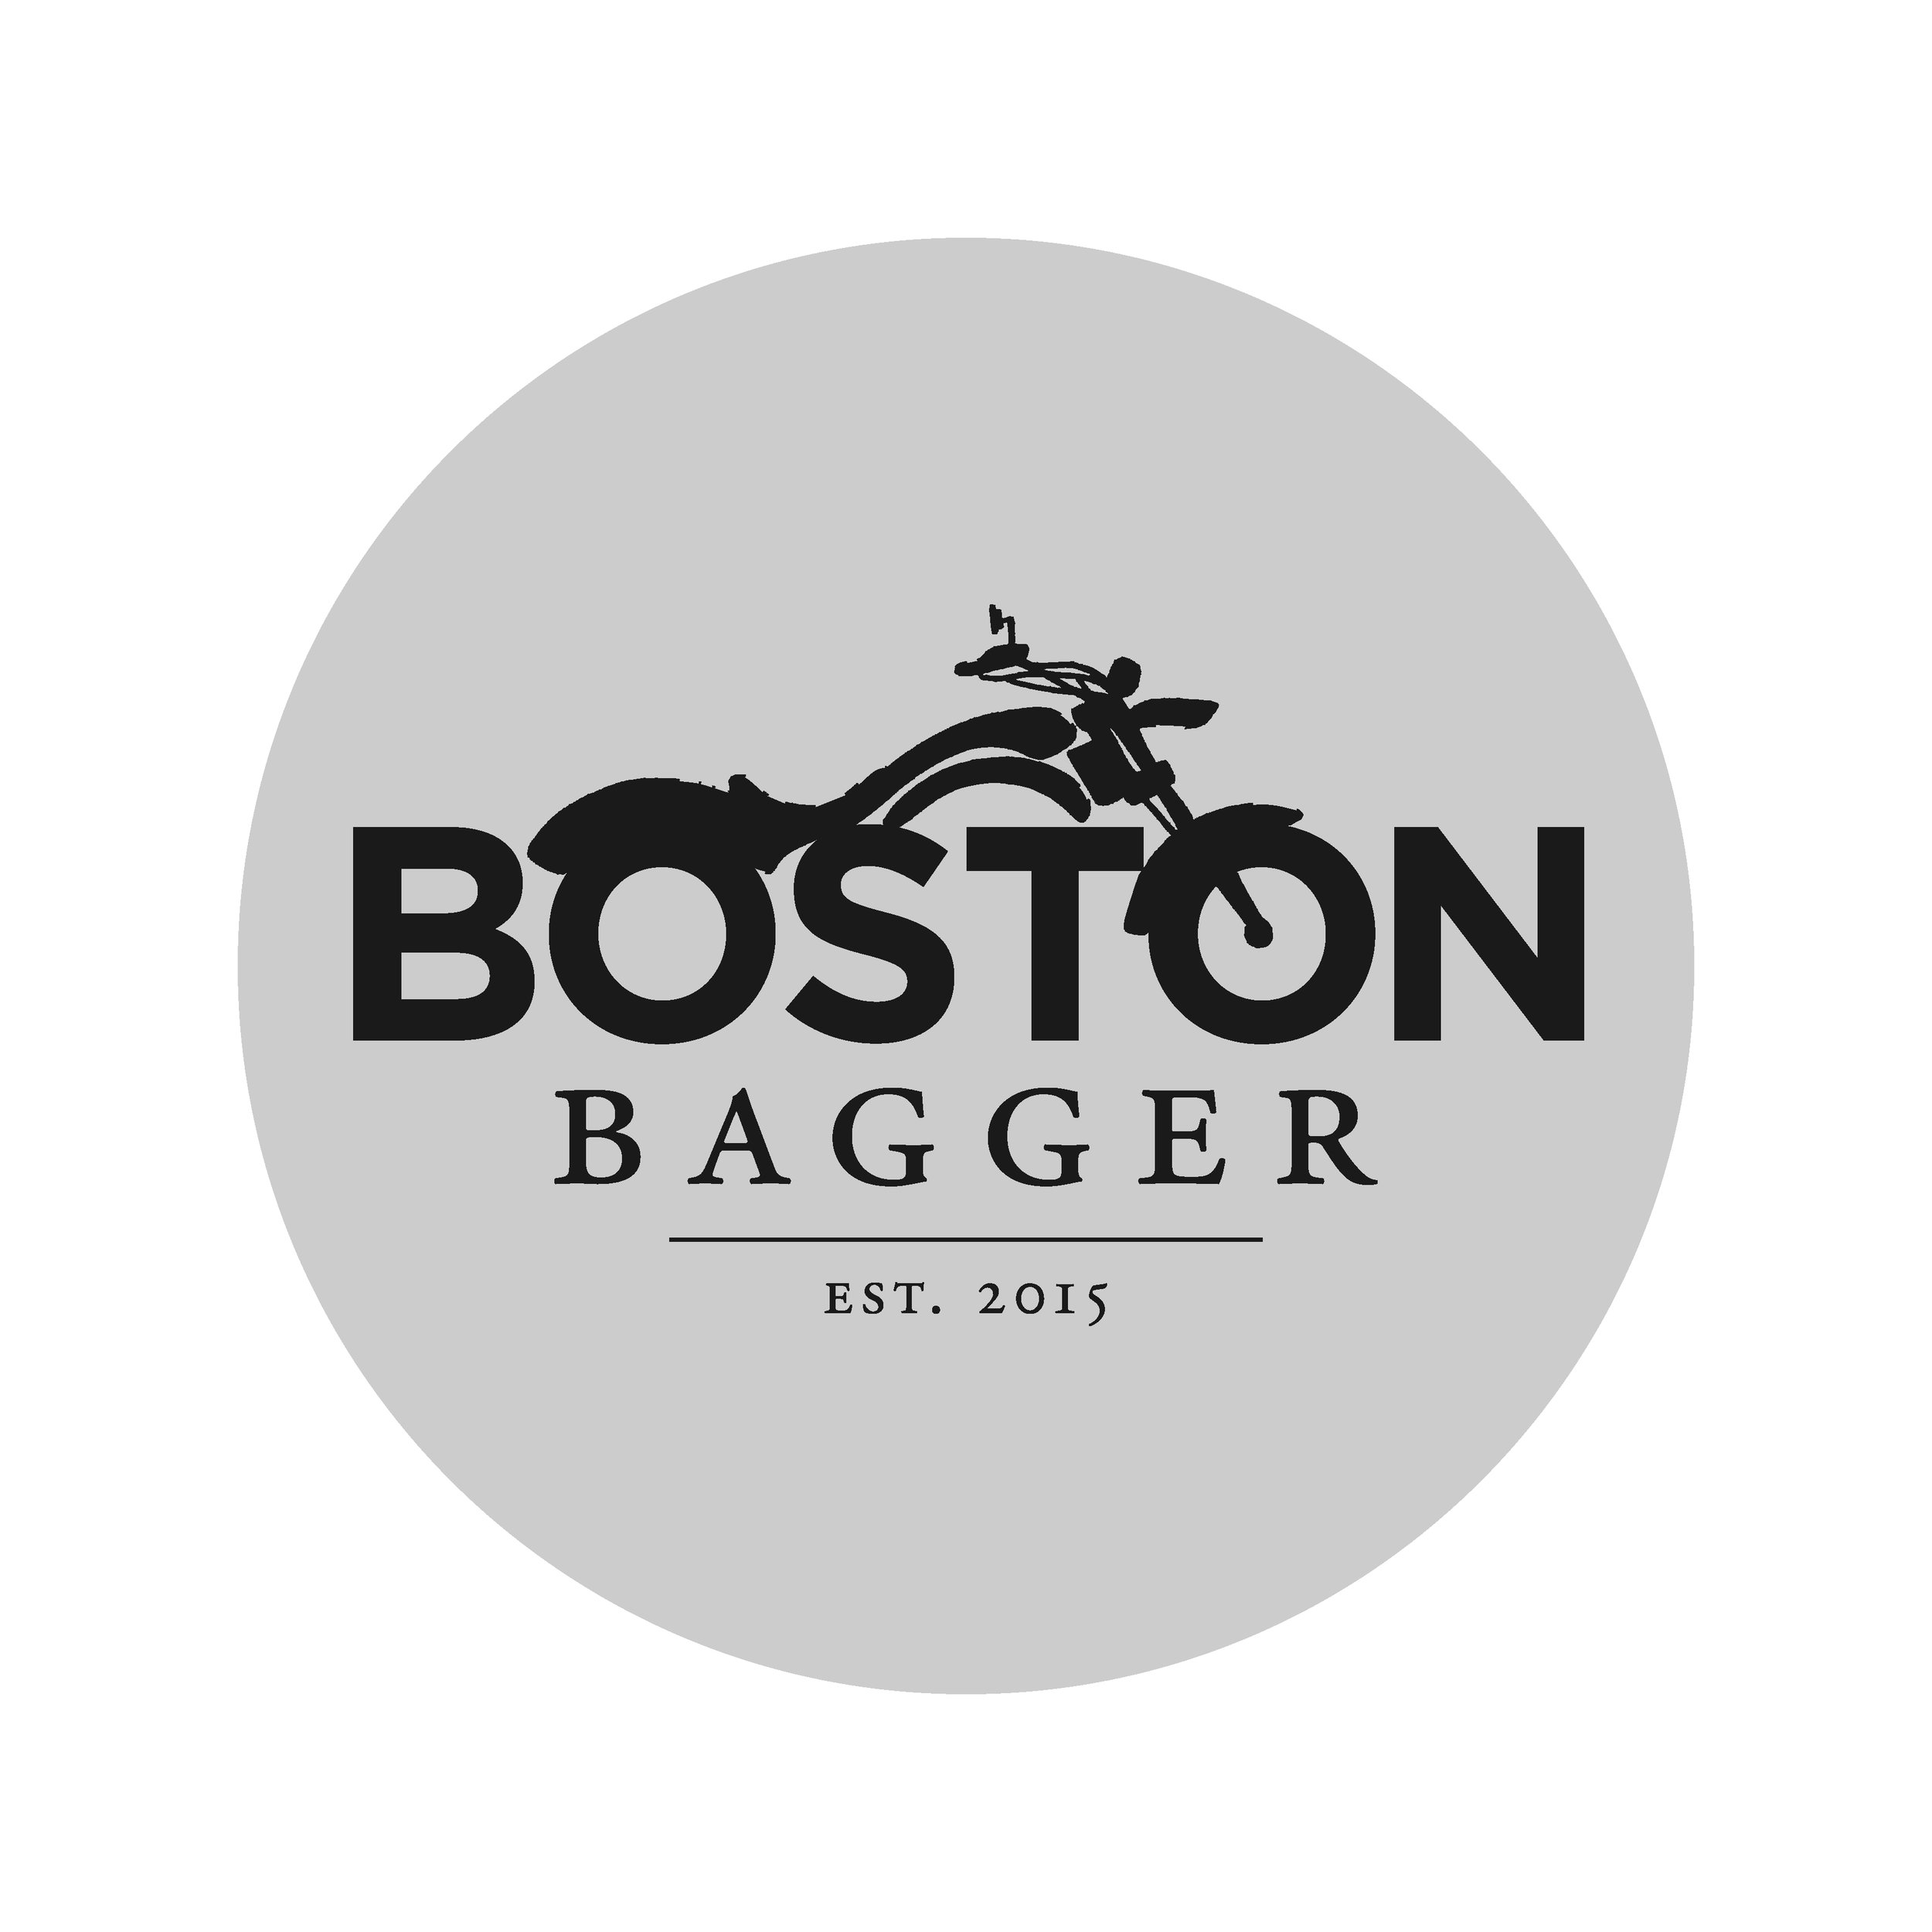 Boston Bagger logo-01.jpg